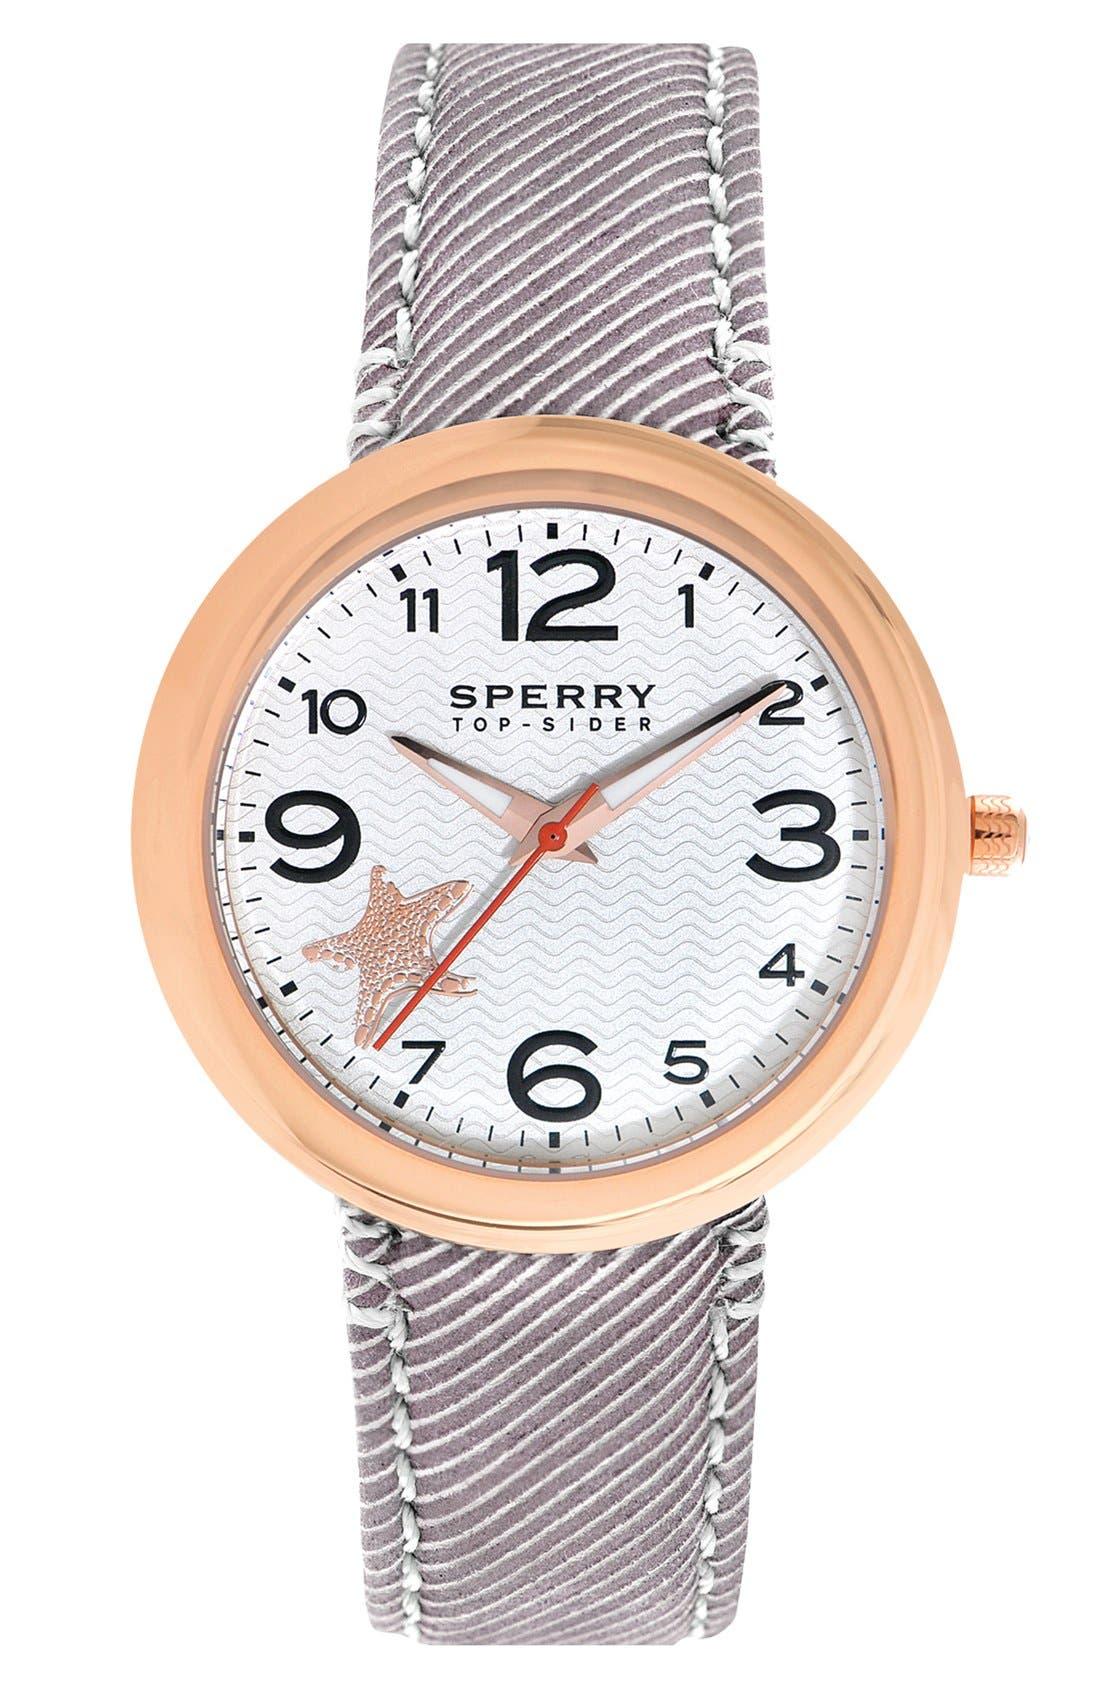 Main Image - Sperry Top-Sider® 'Sandbar' Round Seersucker Strap Watch, 40mm